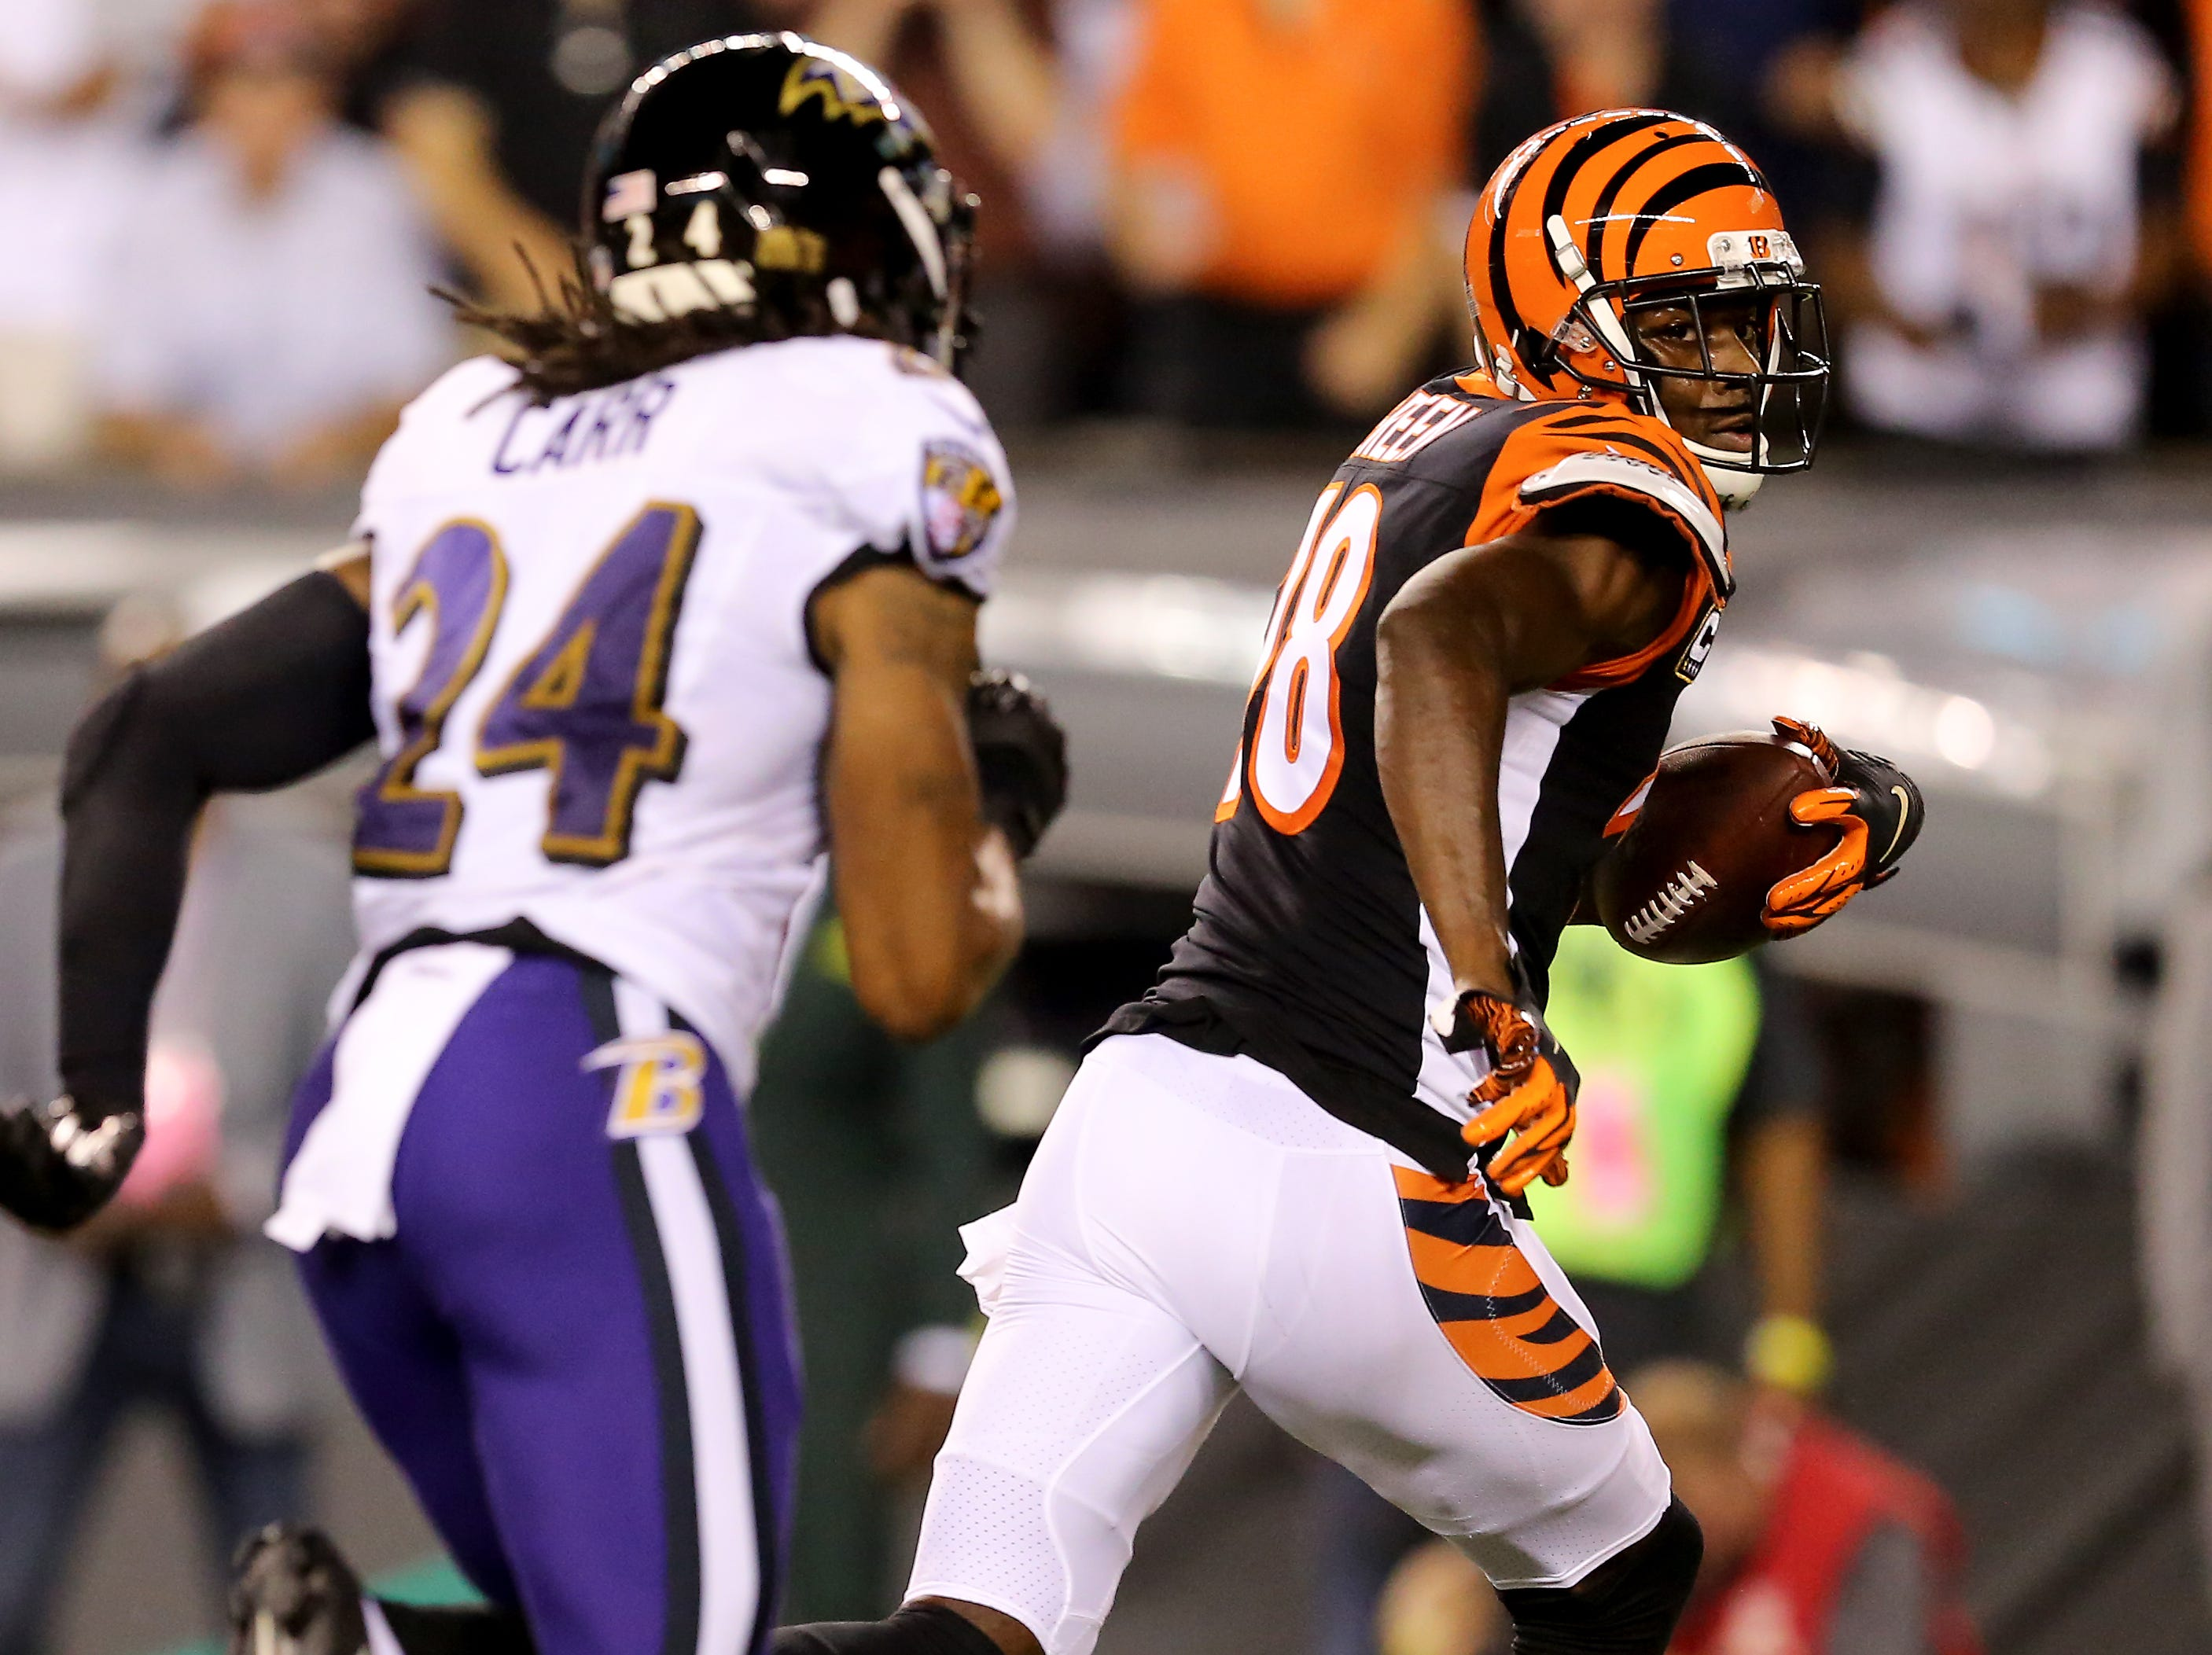 Cincinnati Bengals wide receiver A.J. Green (18) looks back as Baltimore Ravens defensive back Brandon Carr (24) on a catch and run for a touchdown in the first quarter during the Week 2 NFL football game between the Baltimore Ravens and the Cincinnati Bengals, Thursday, Sept. 13, 2018, Paul Brown Stadium in Cincinnati.